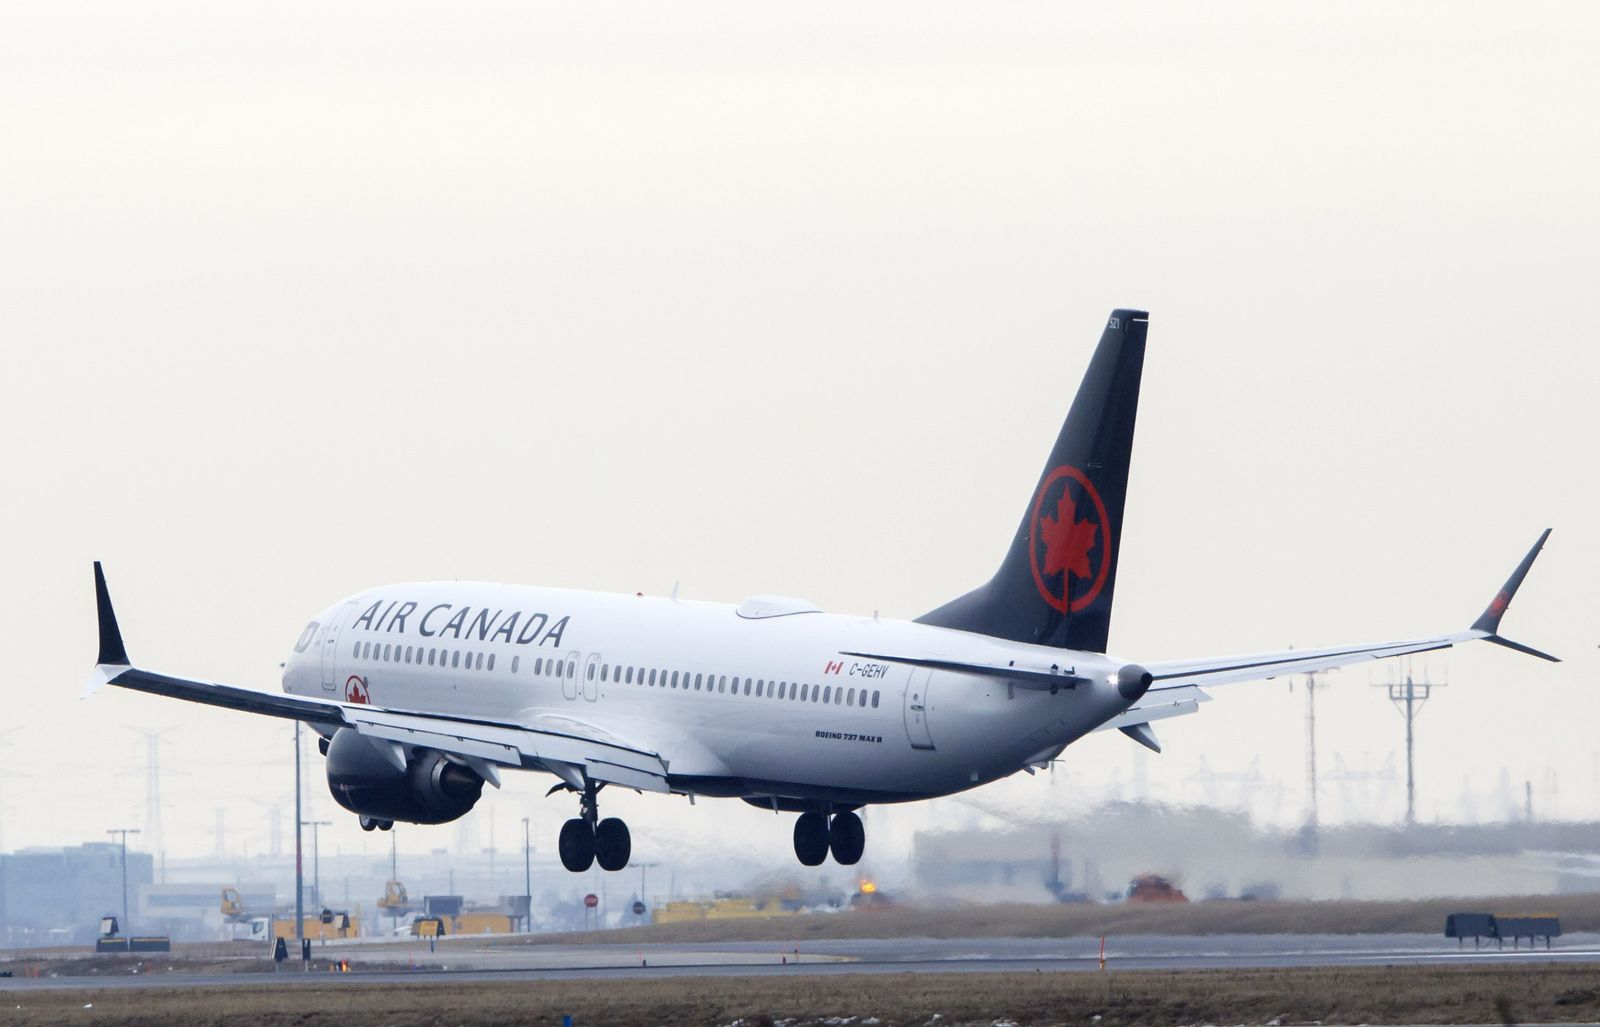 Canada Joins Over 40 Countries Grounding Boeing 737 MAX 8 Jets